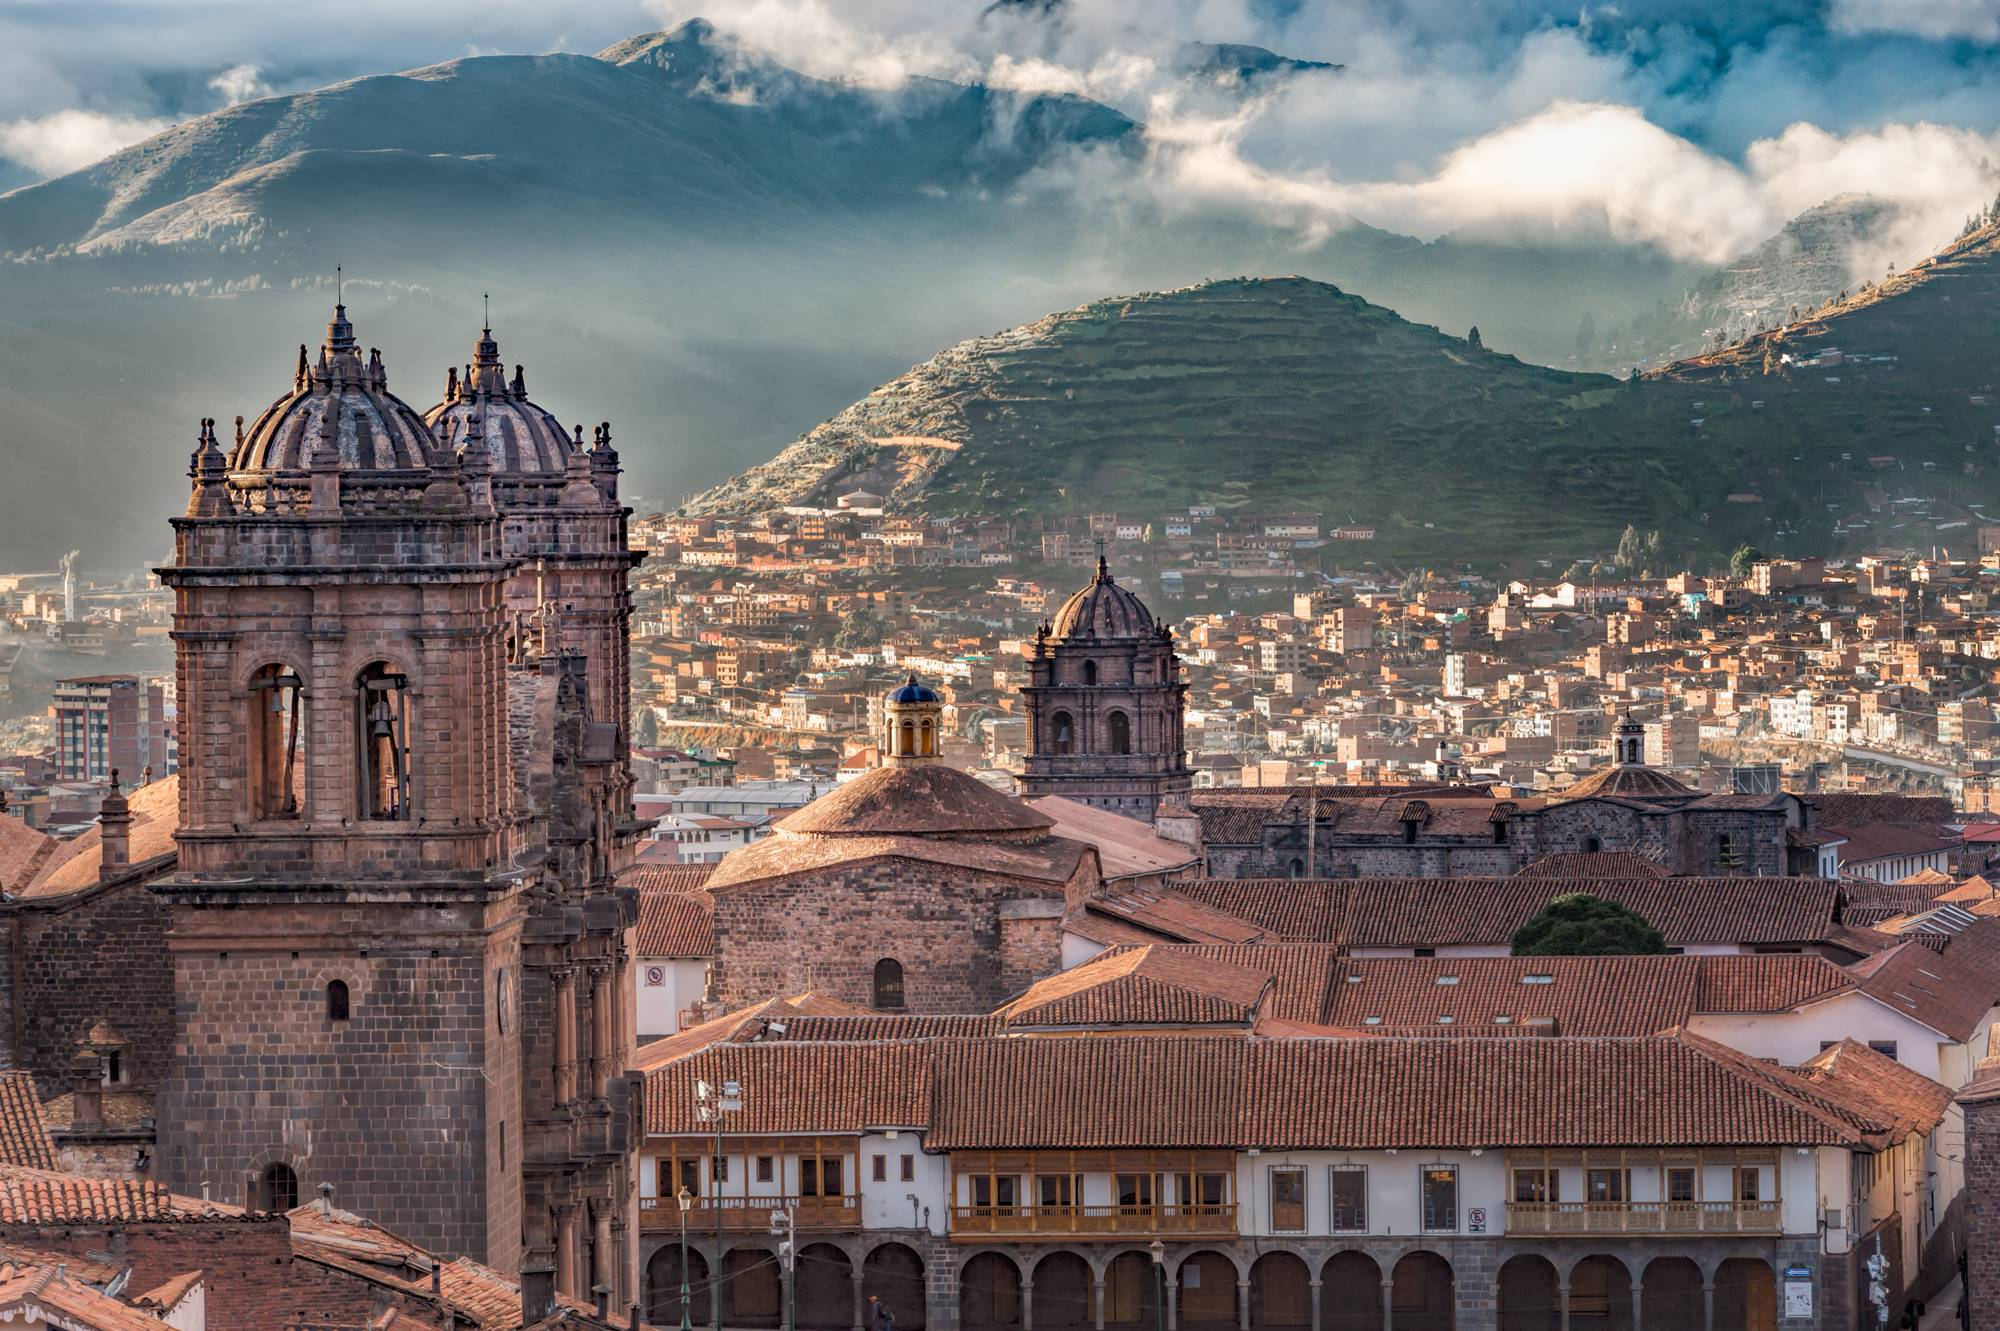 FIVE THINGS TO DO IN CUSCO